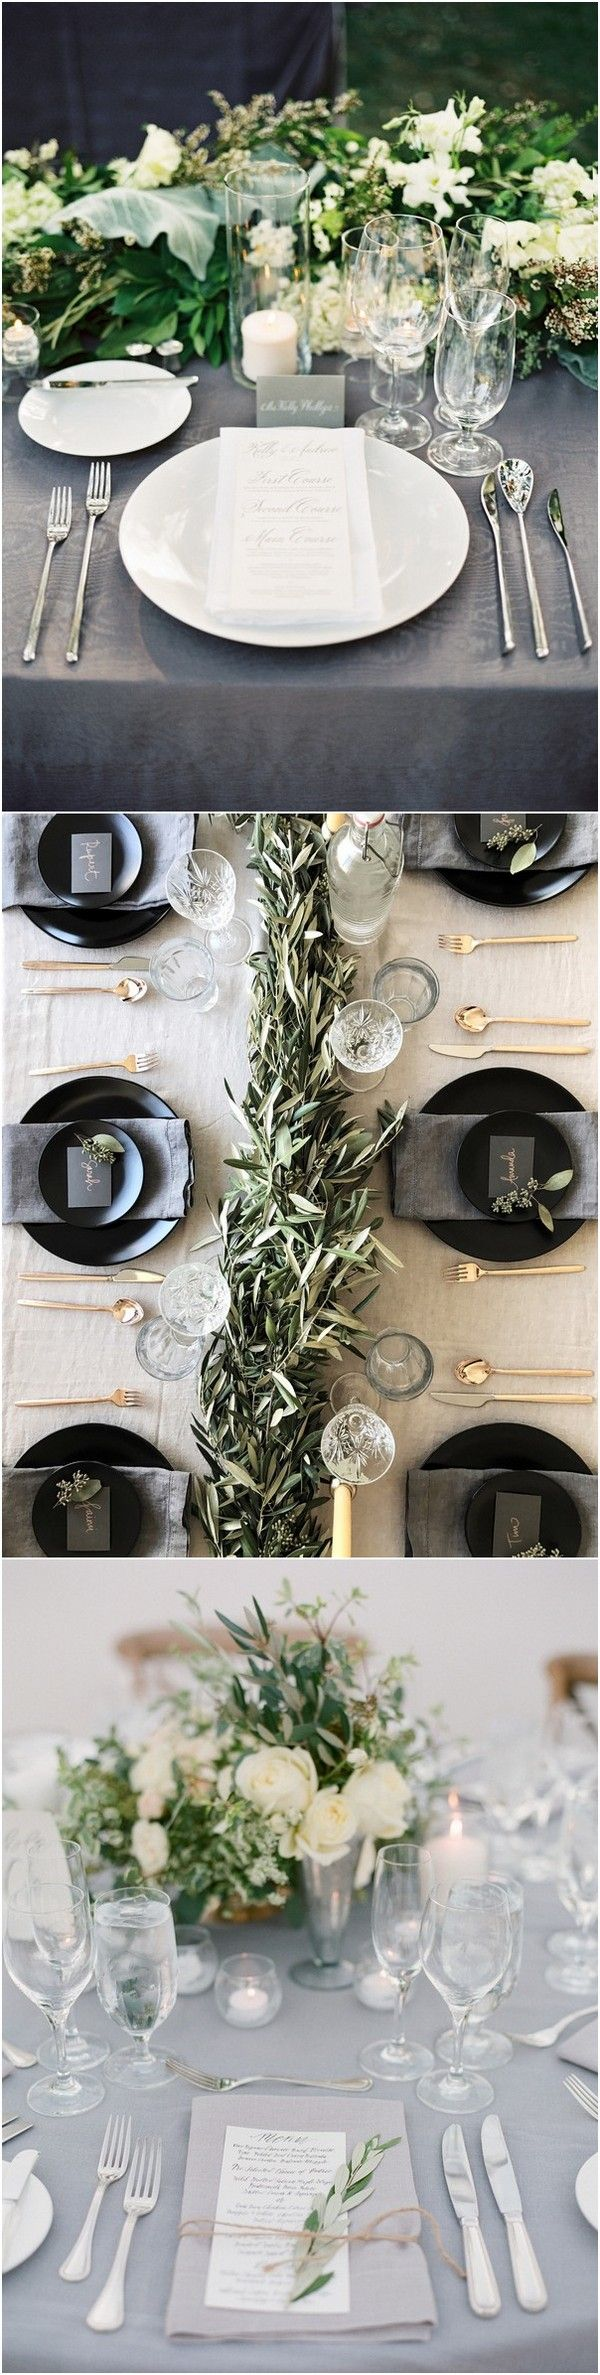 Wedding room decoration ideas 2018  Trending Elegant Green and Grey Wedding Color Ideas for